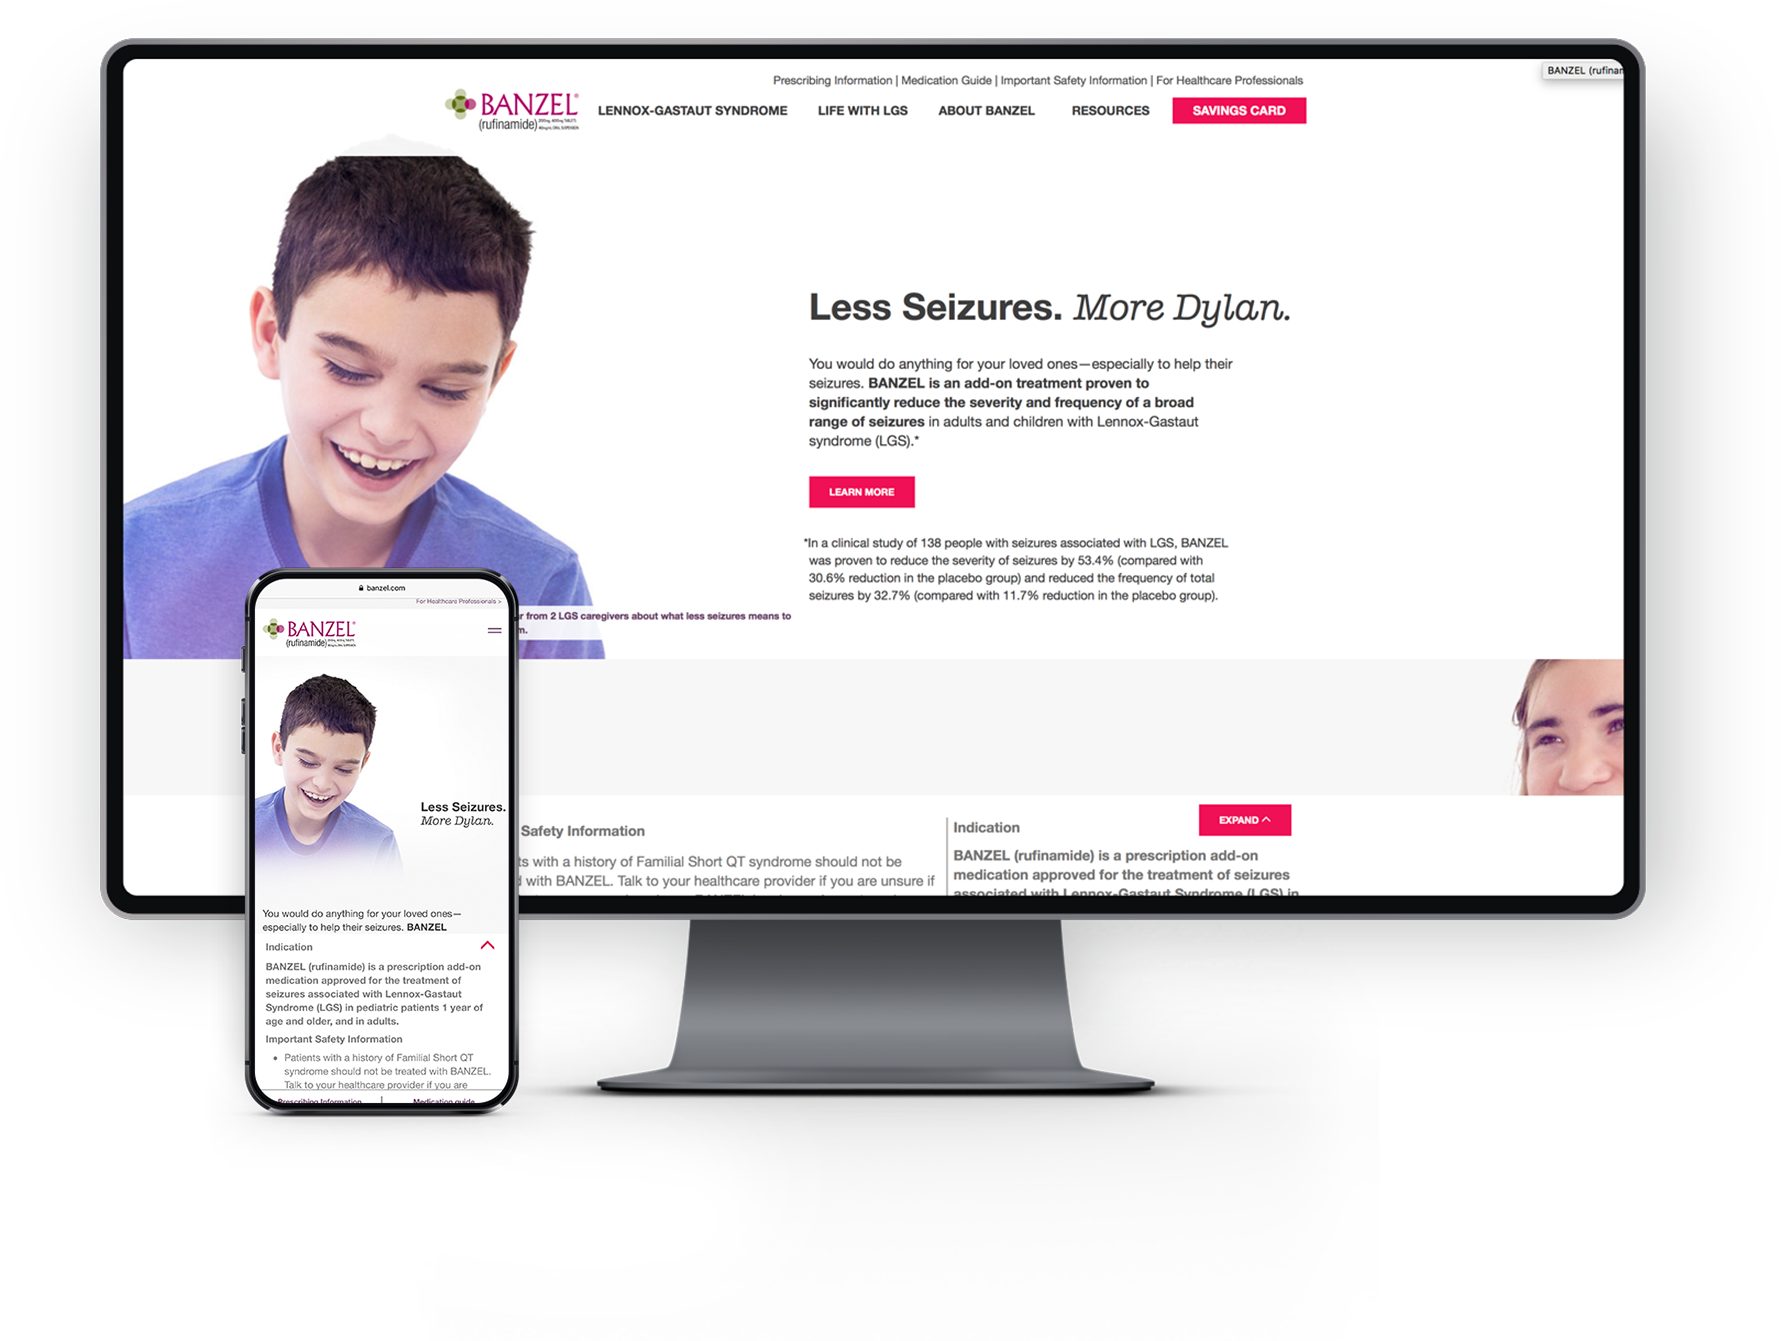 image of Patients & Purpose Wins 2019 Best Pharmaceuticals Mobile Website Mobile WebAward for Love Less Seizures